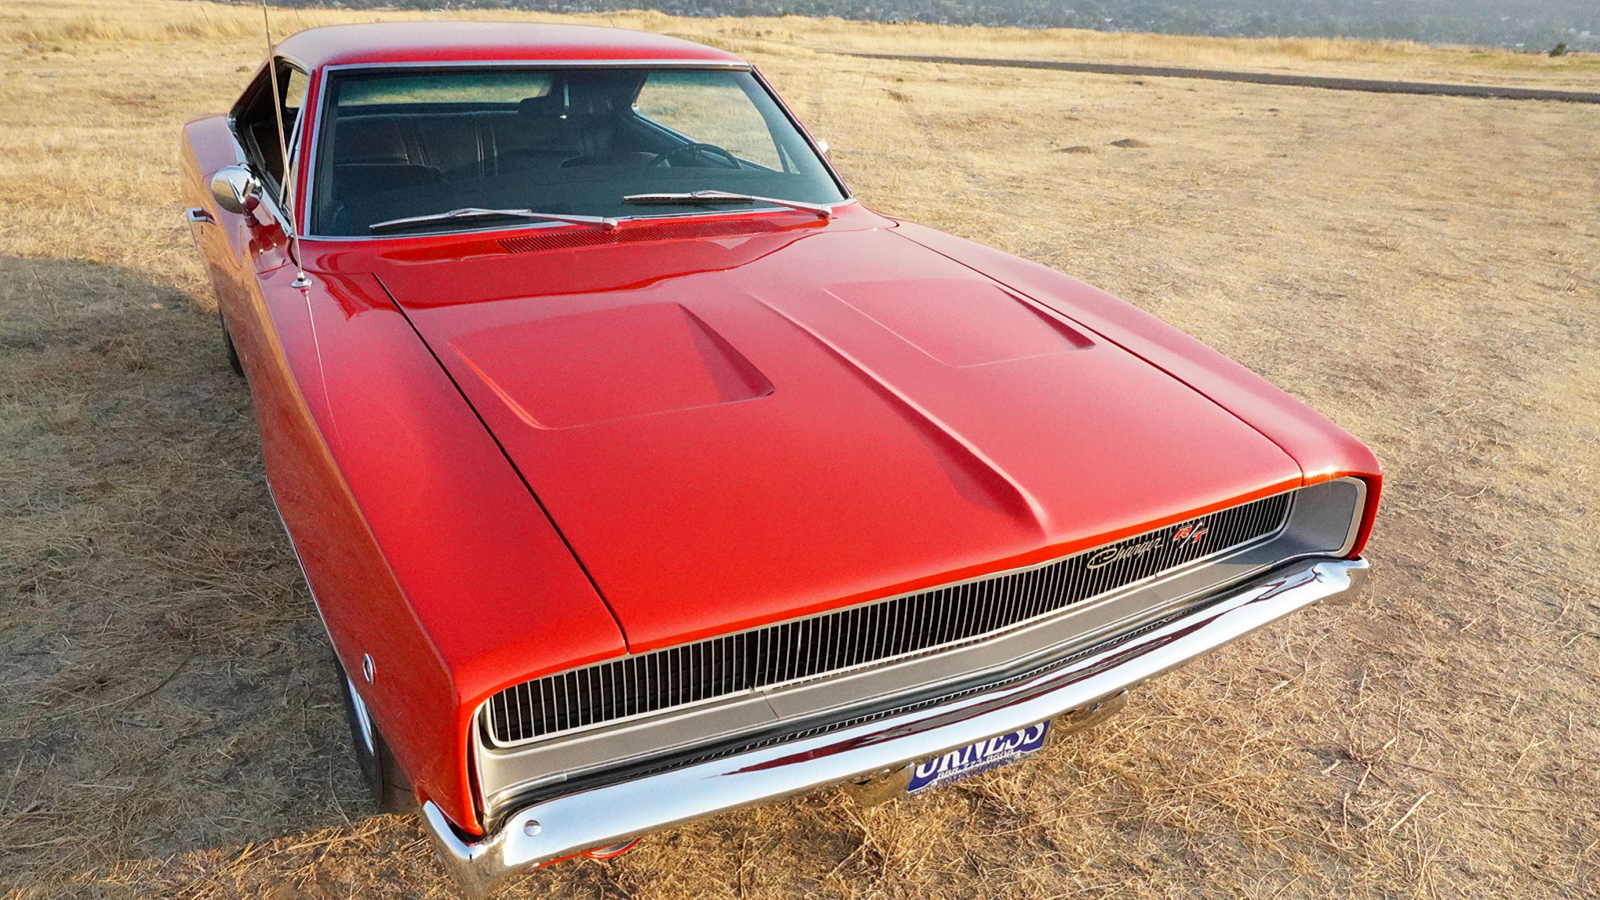 Beautifully Restored 1968 Charger 440 R/T Came from a Field